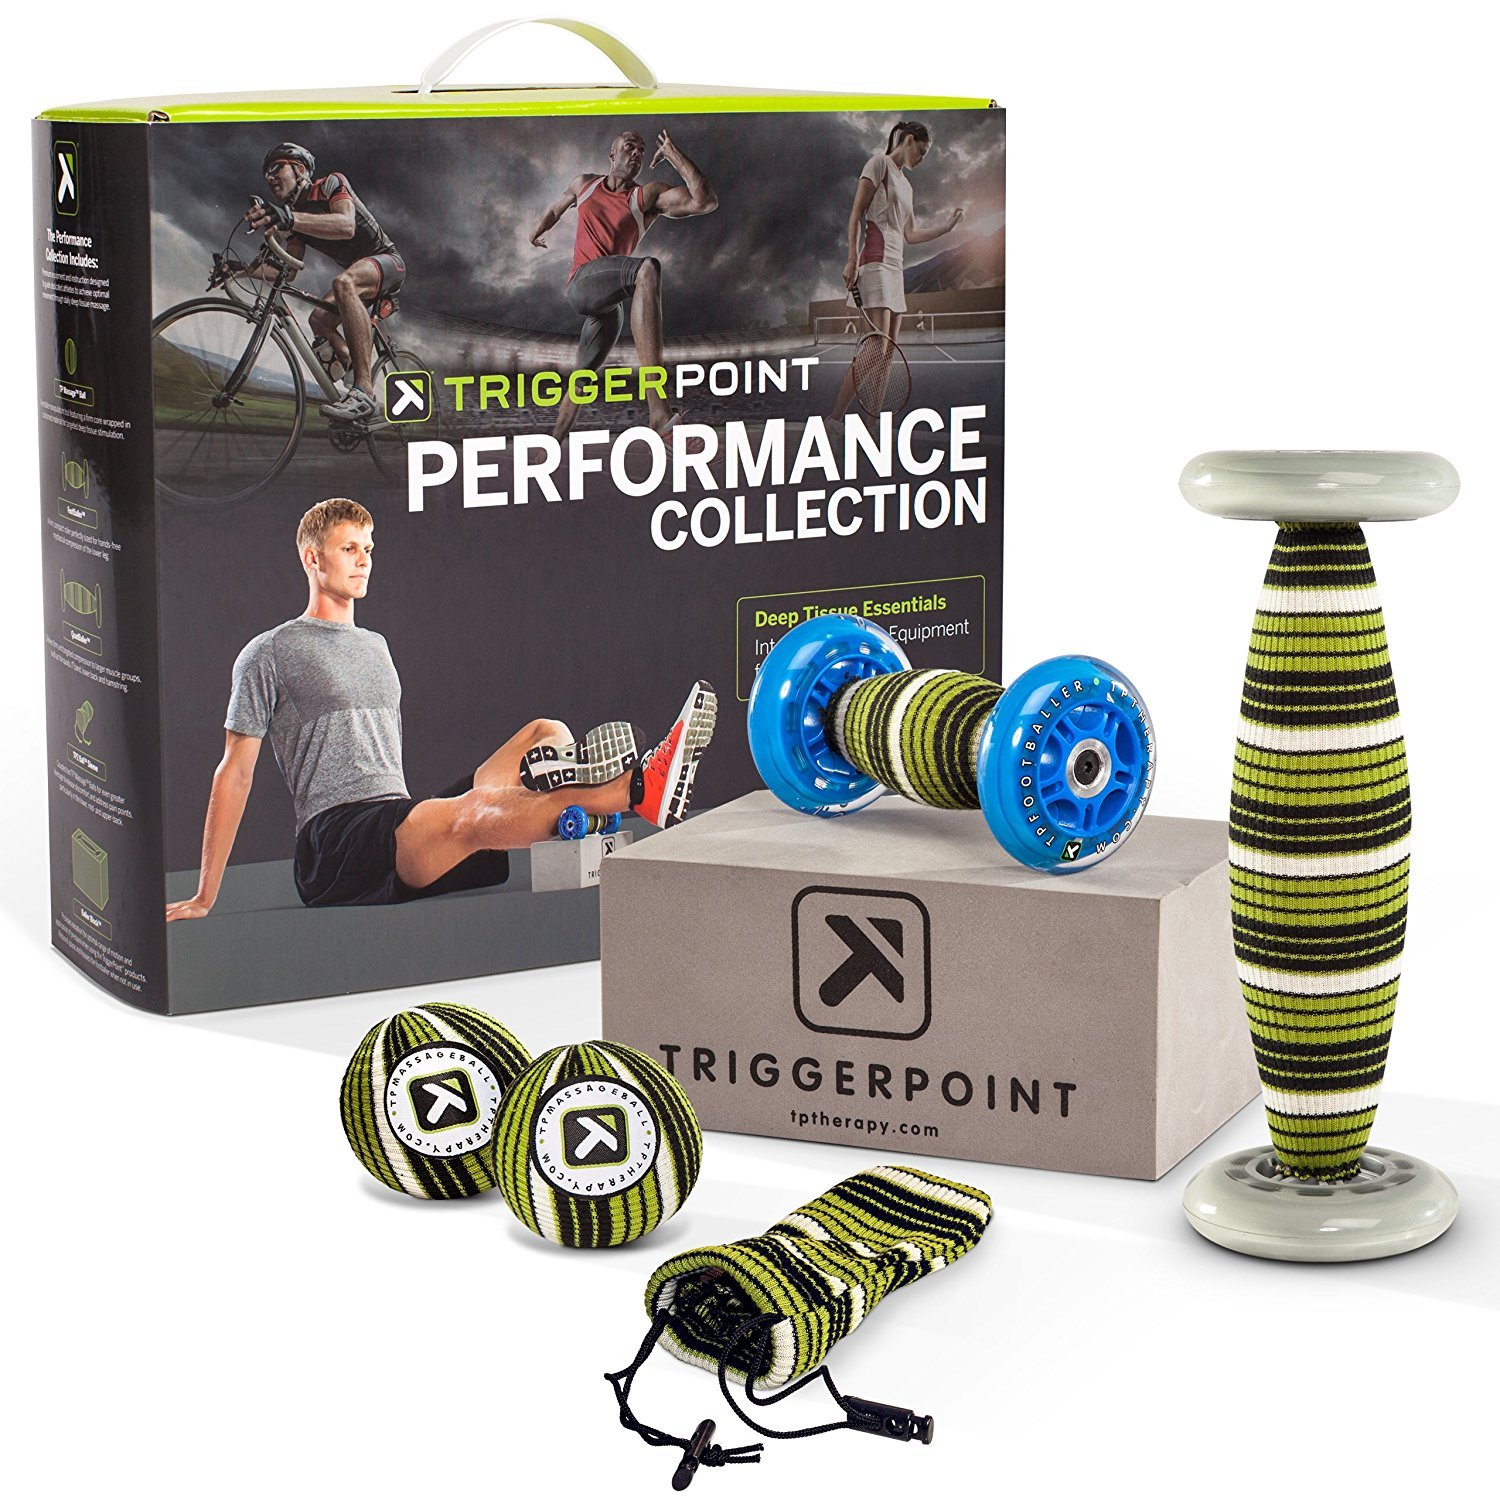 Trigger Point Performance Collection for Total Body Deep Tissue Self-Massage (6 Piece) by Trigger Point Performance [並行輸入品]   B01AL440SC